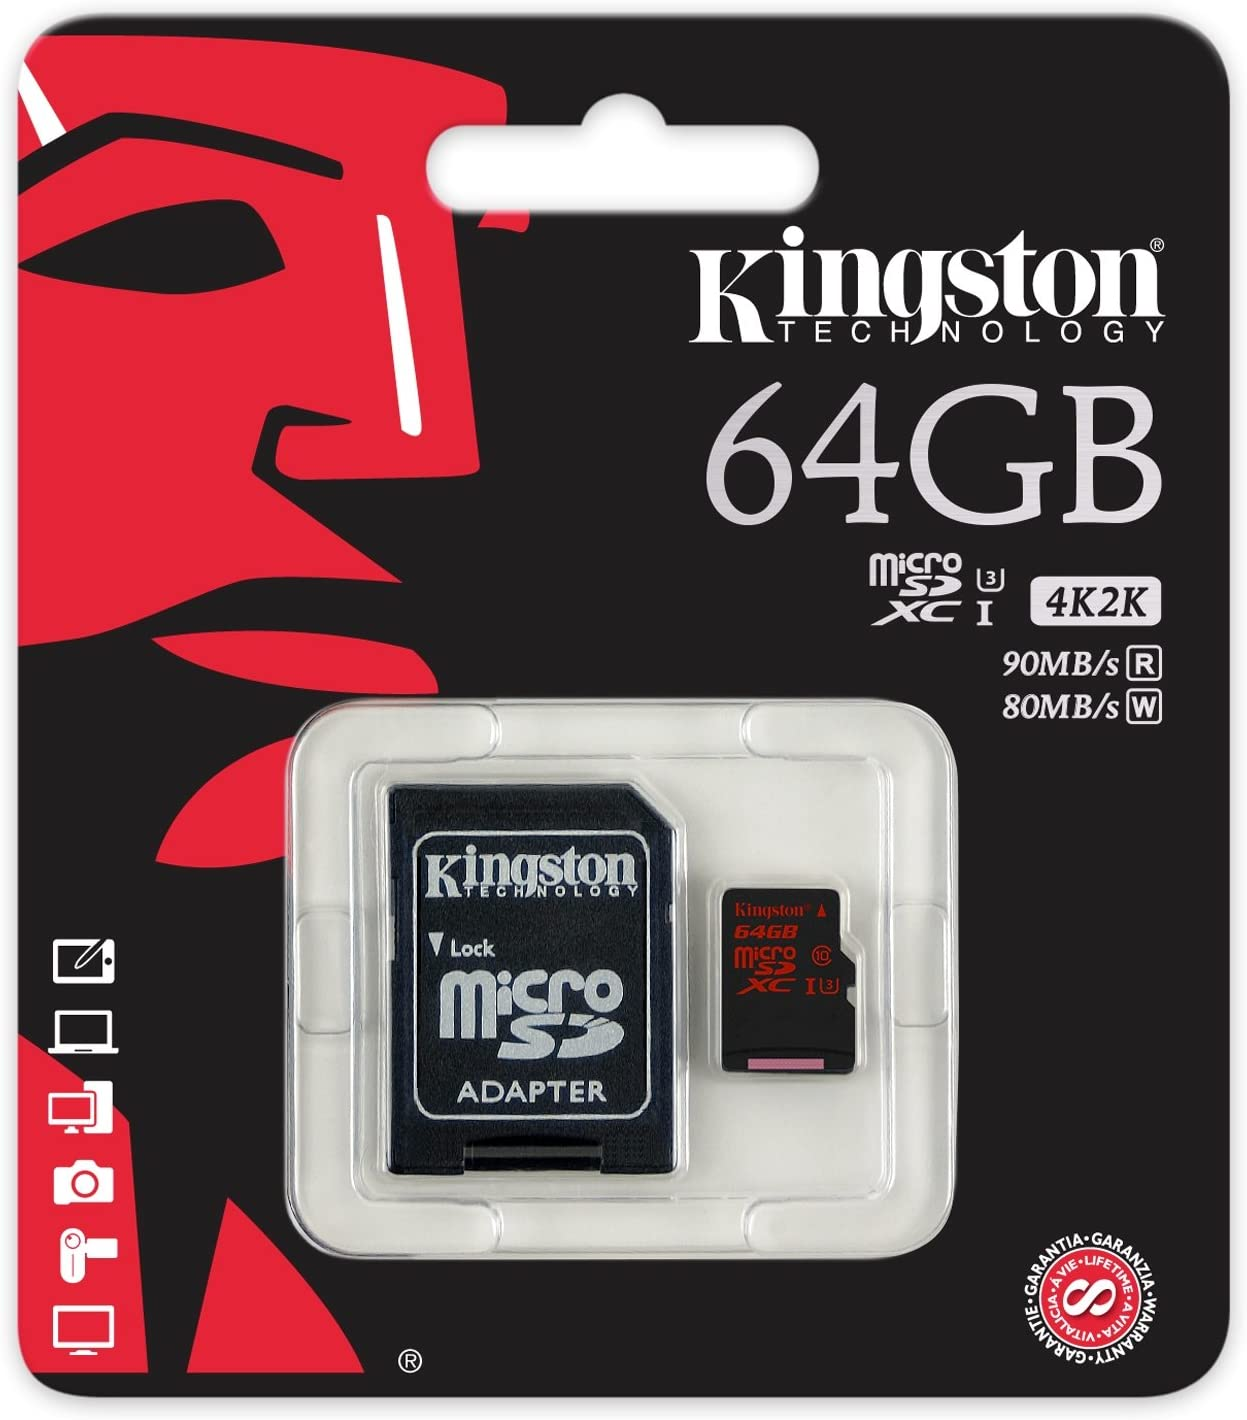 90MBs Works for Kingston Kingston Industrial Grade 8GB Asus ZenFone 3 Max MicroSDHC Card Verified by SanFlash.